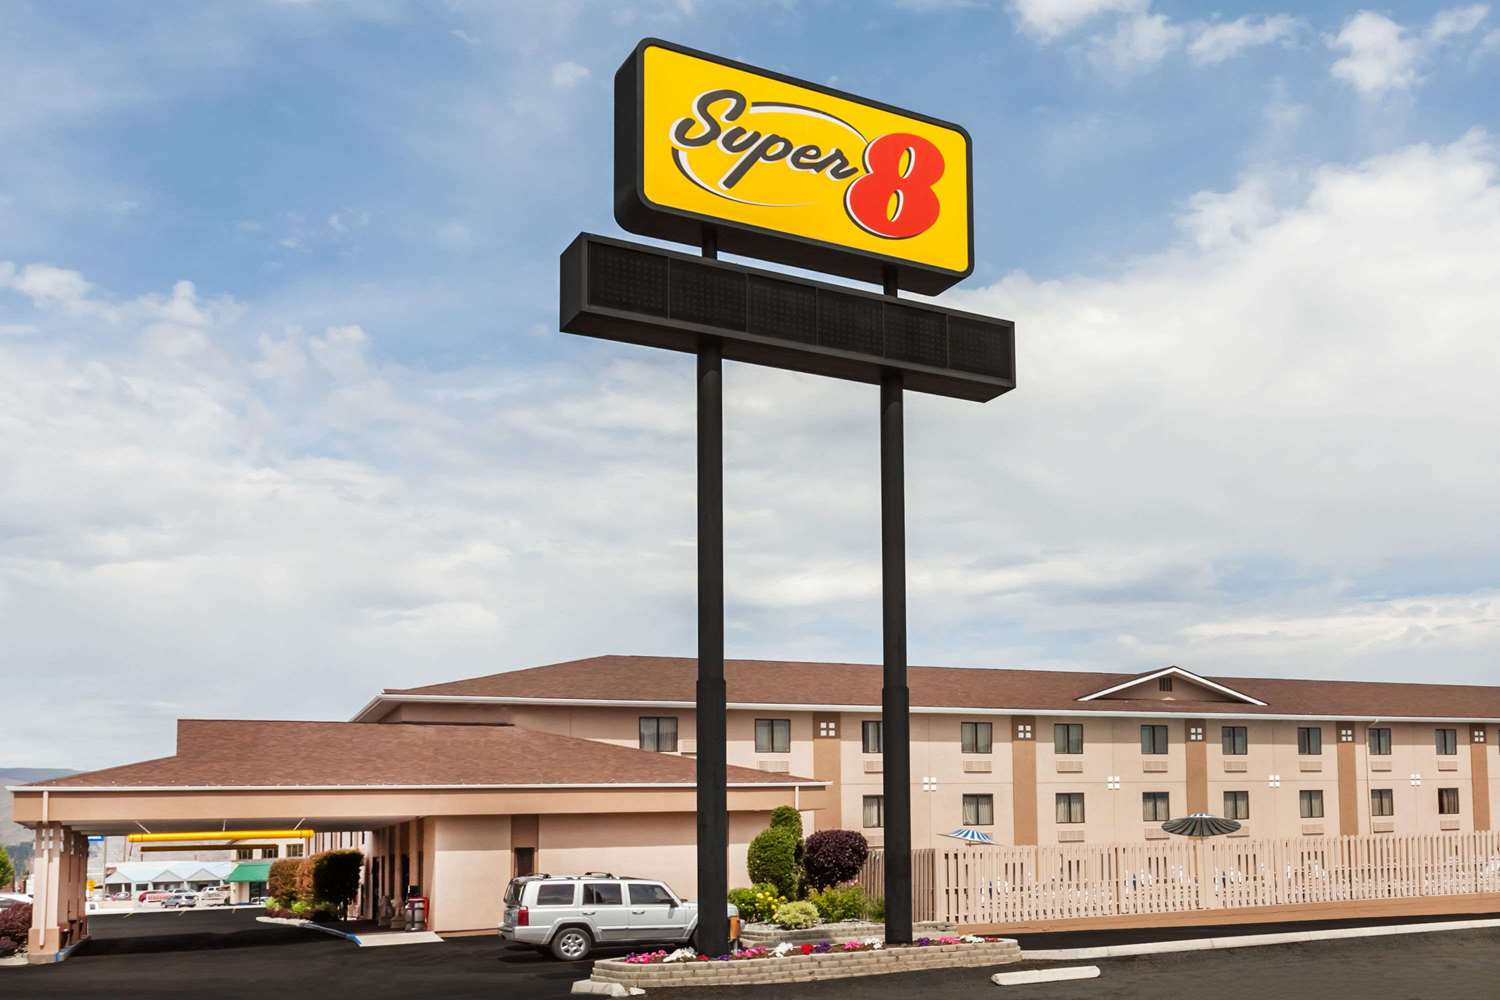 Super 8 Hotel Wenatchee